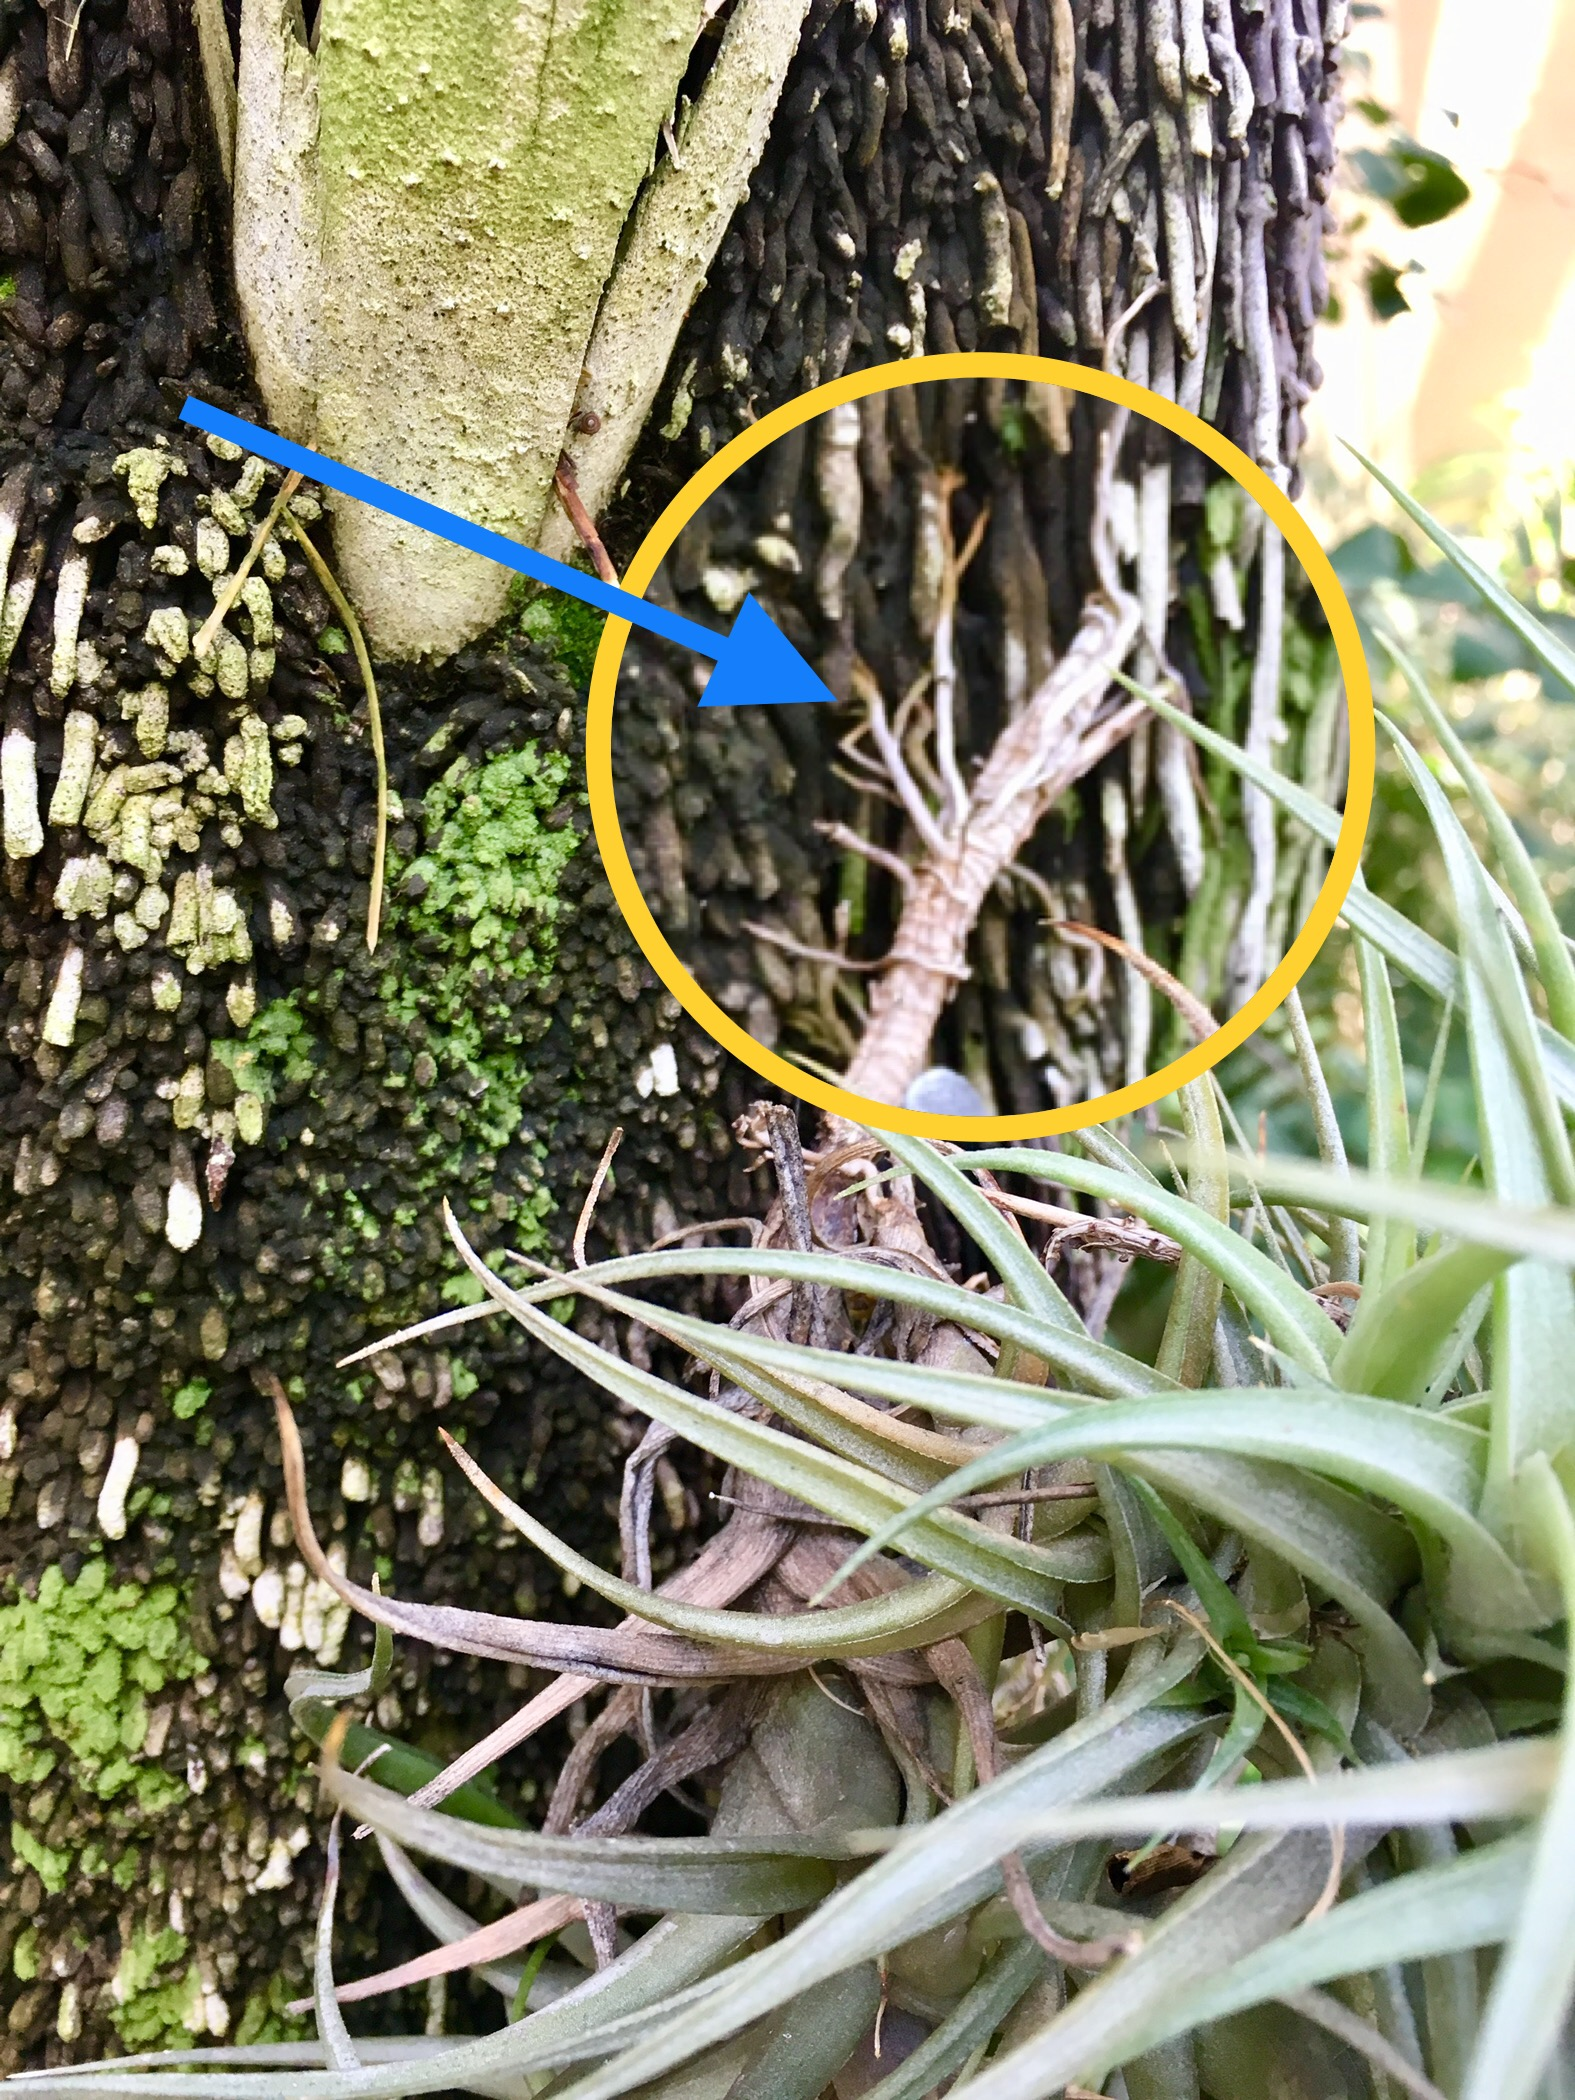 Tillandsia roots attaching itself to a host plant.